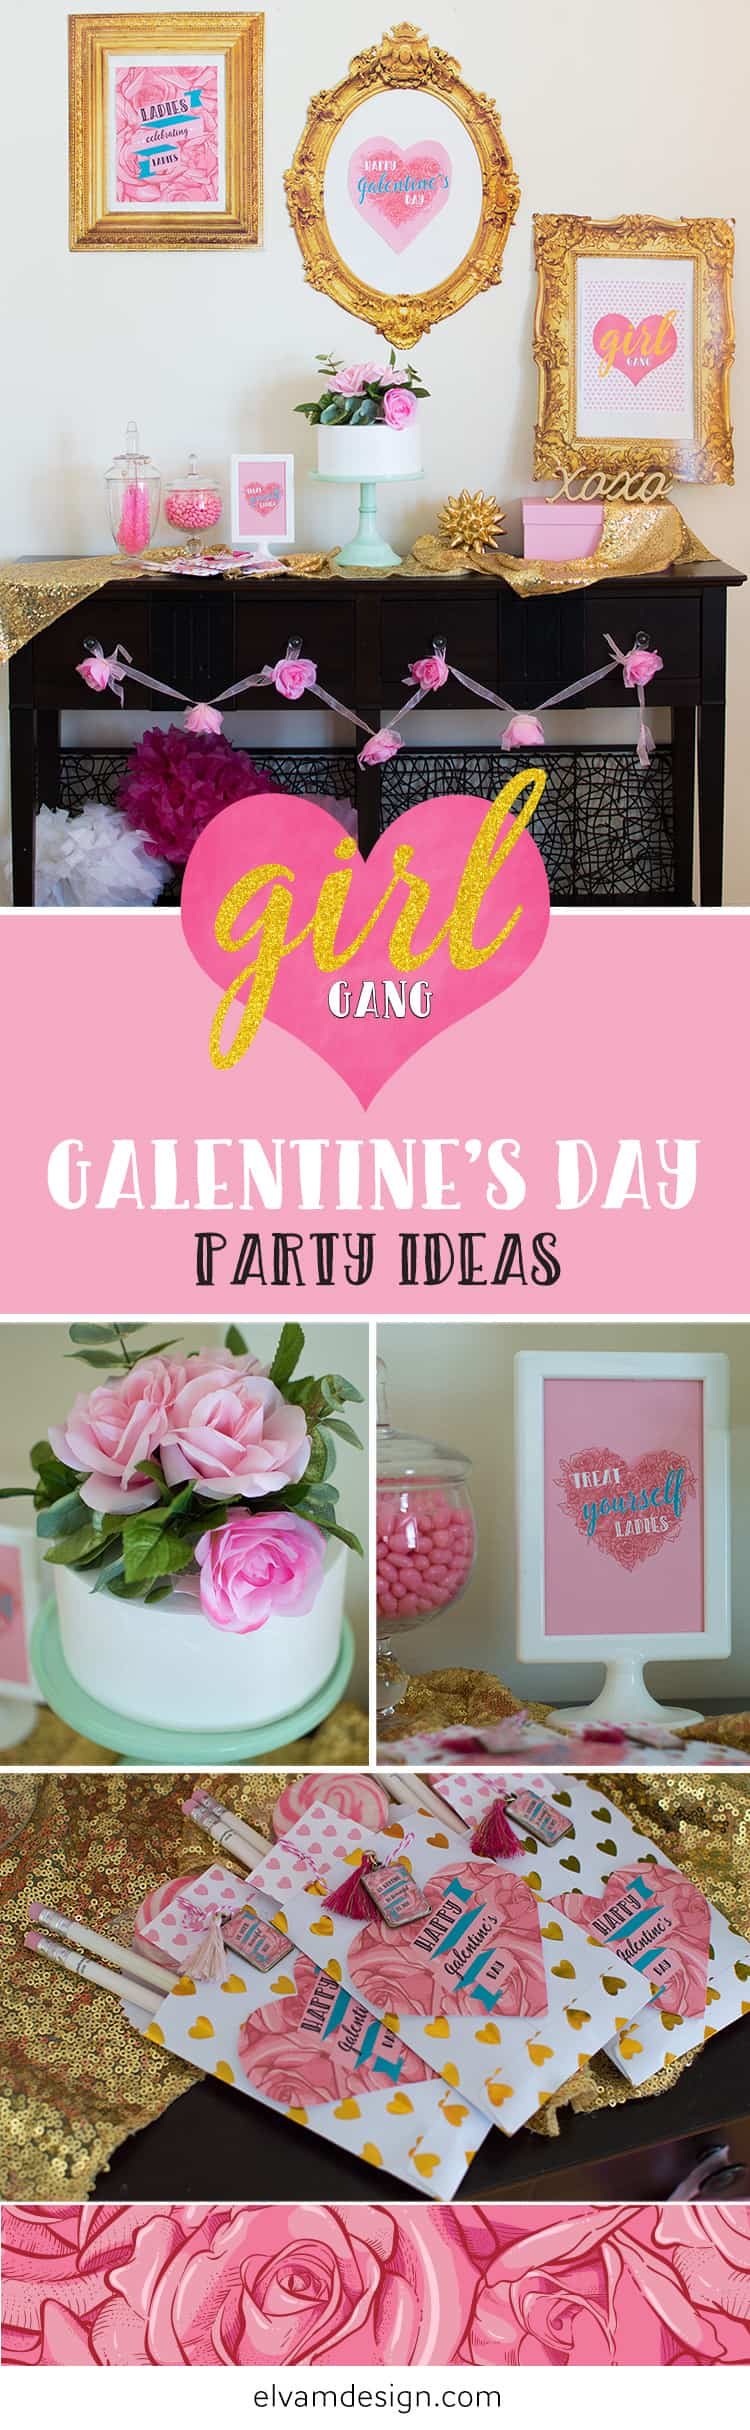 Check out this Girl Gang Galentine's Day Party by Elva M Design Studio.